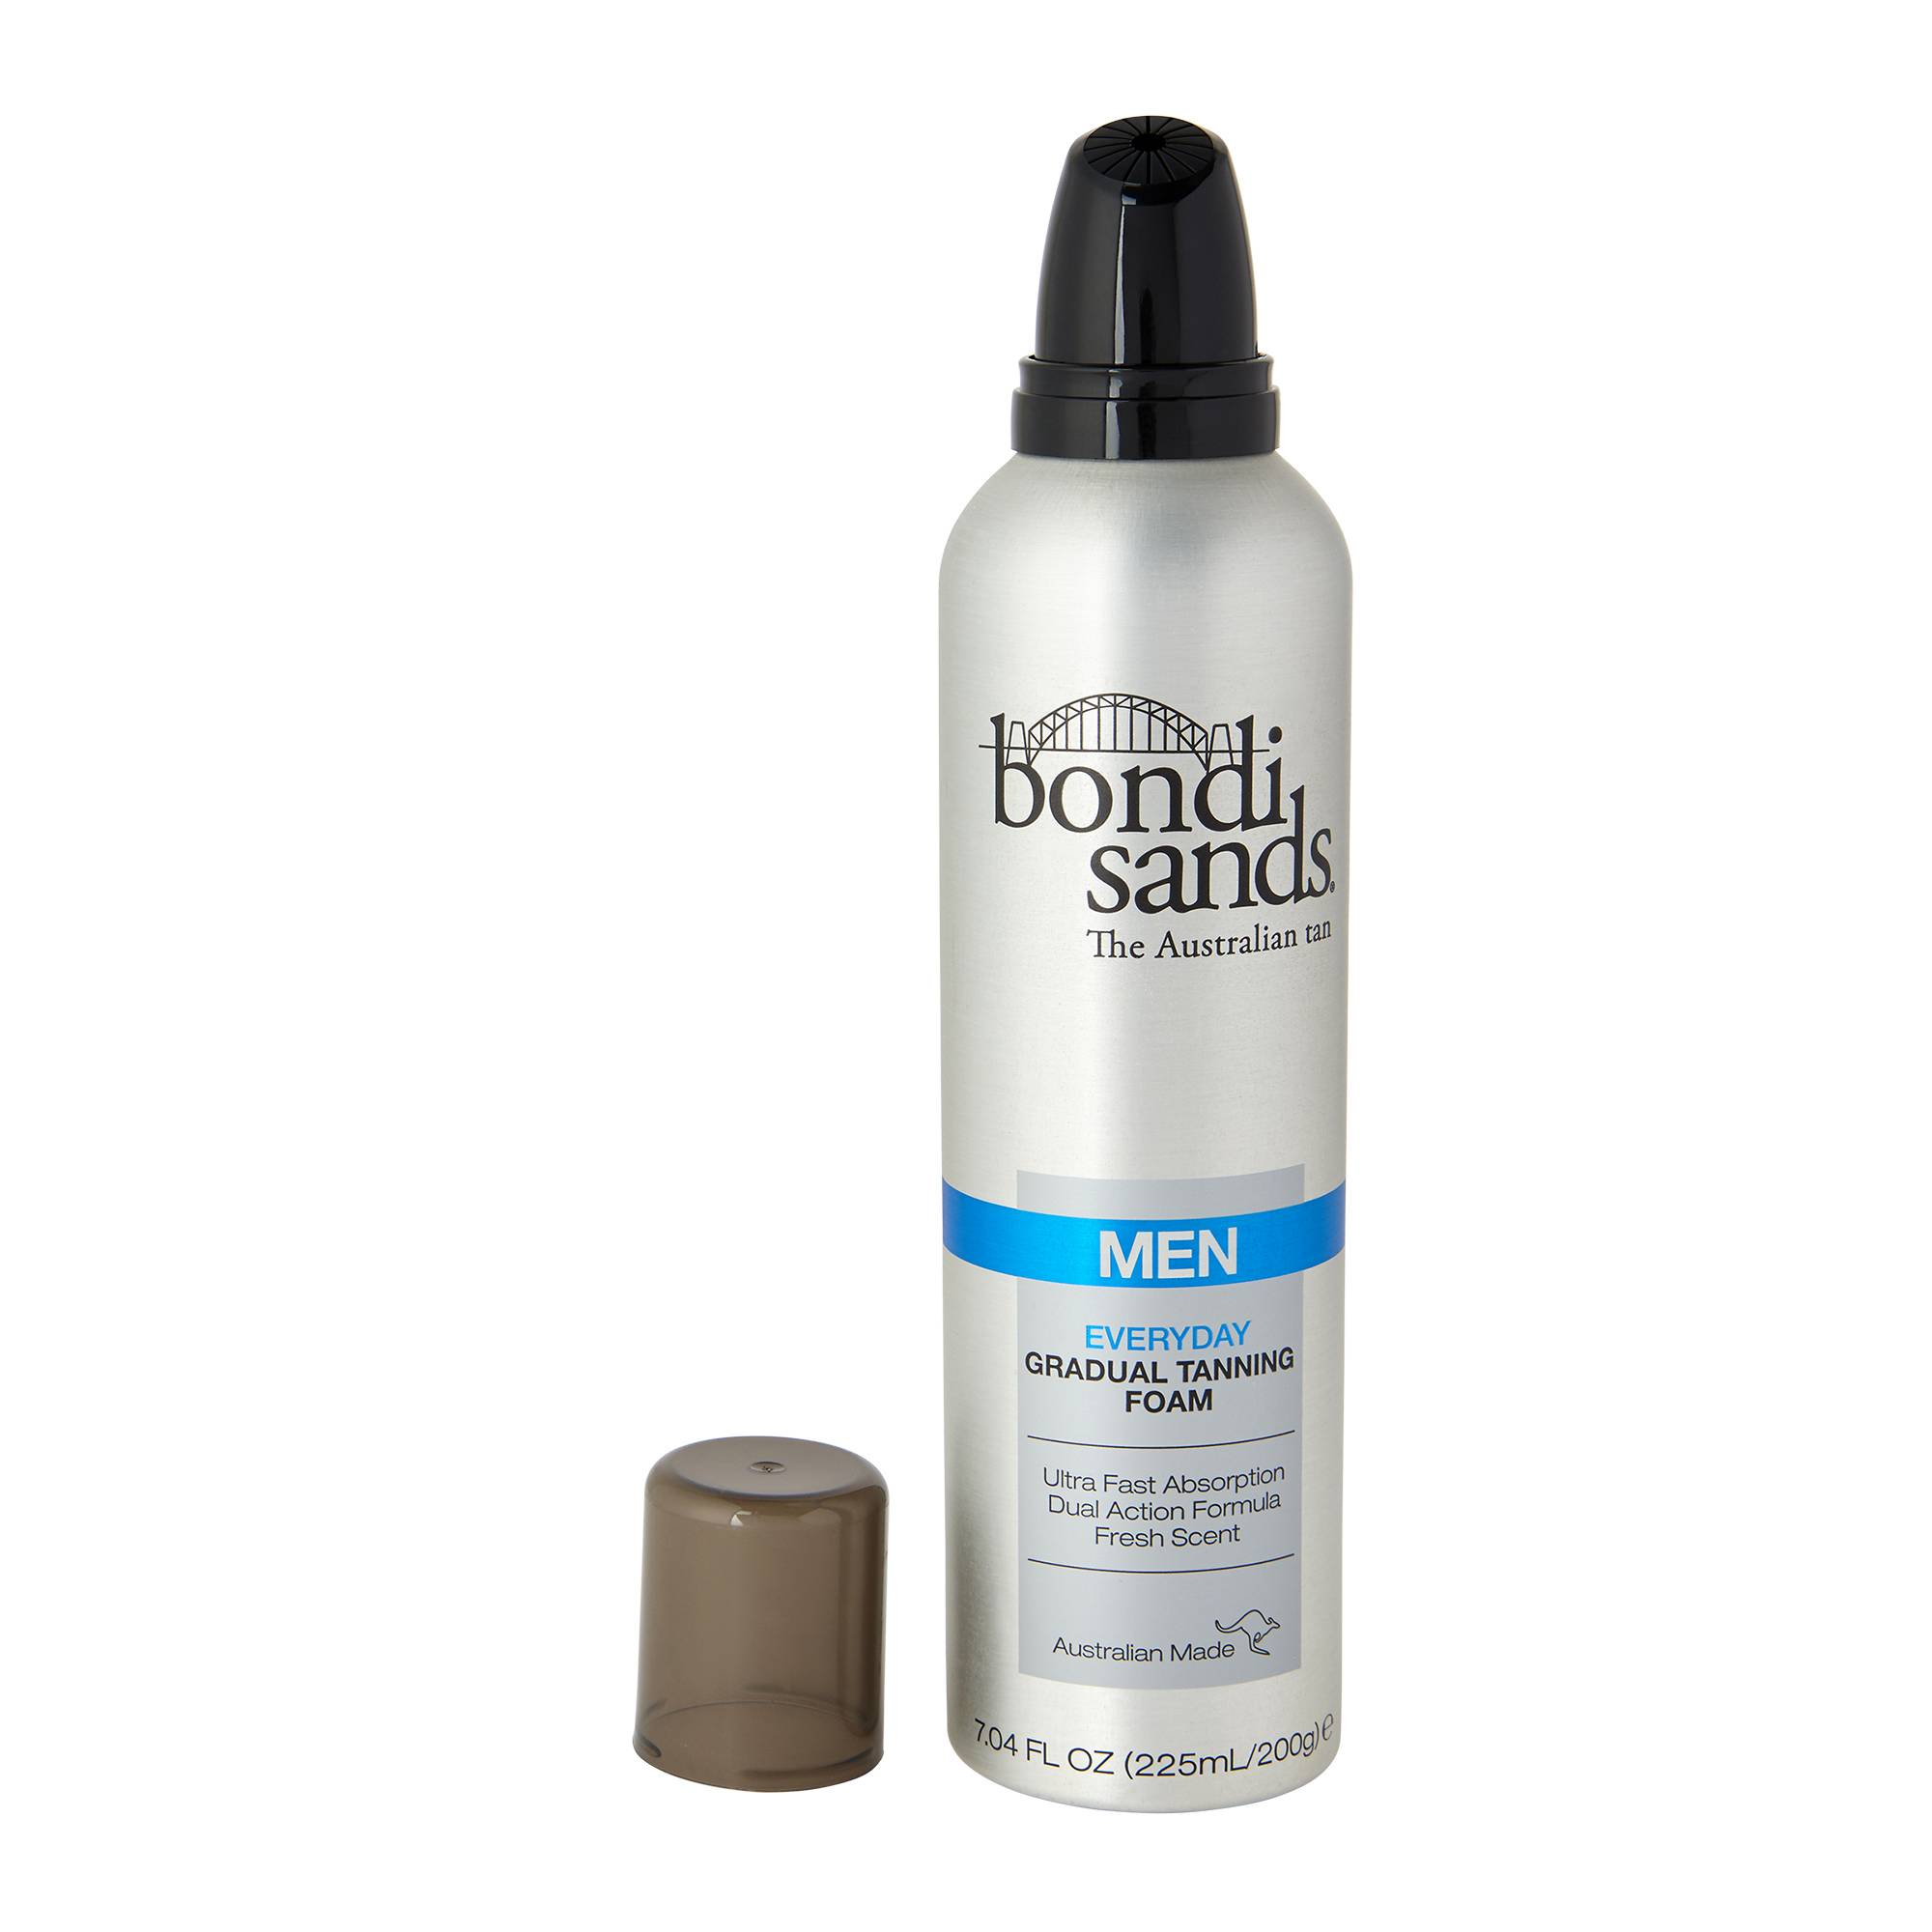 Bondi Sands Everyday Gradual Tanning Foam for Men 225ml